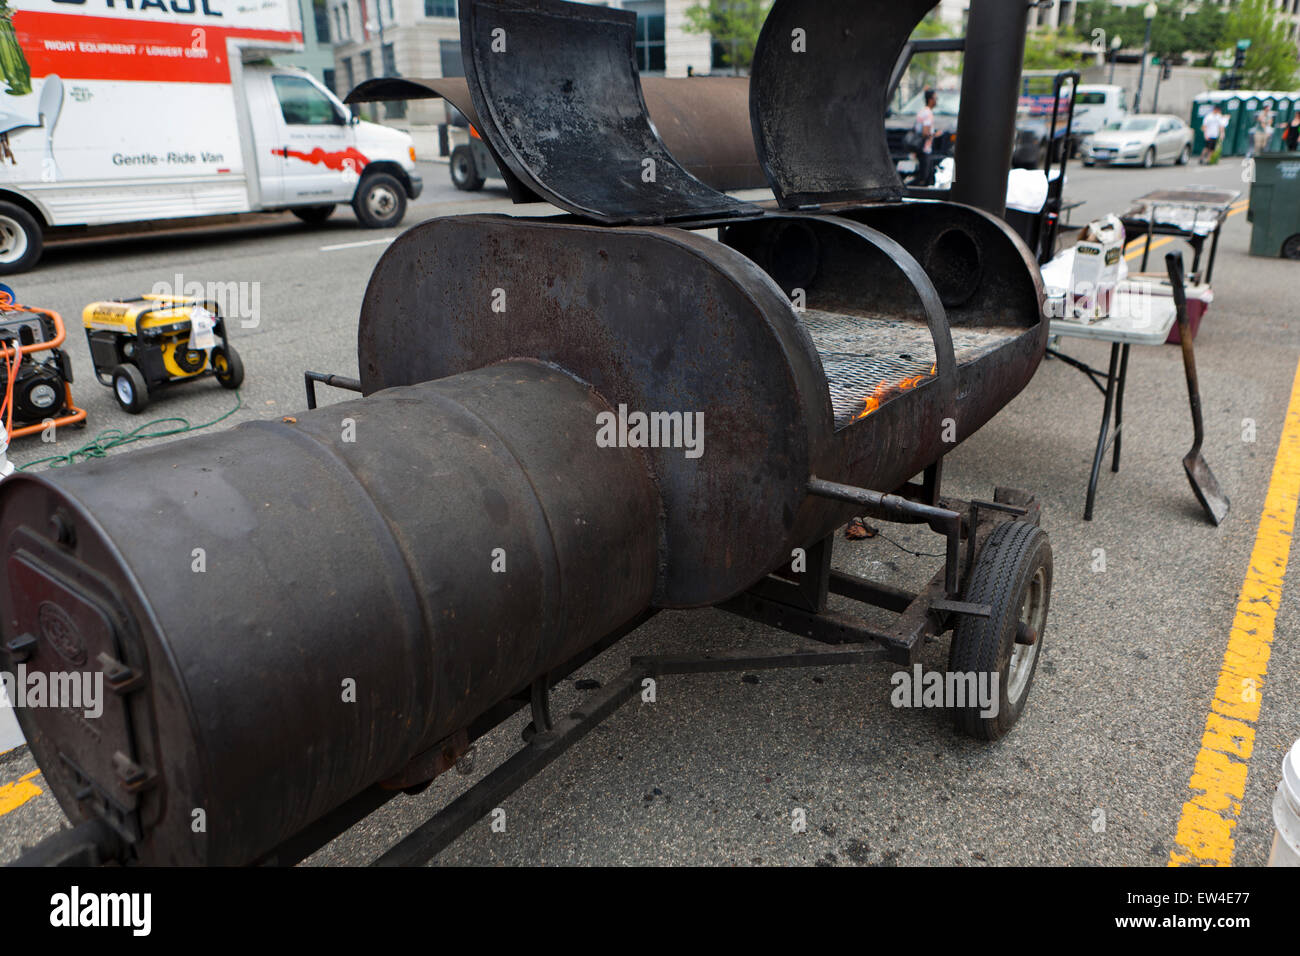 Large drum charcoal grill - USA - Stock Image